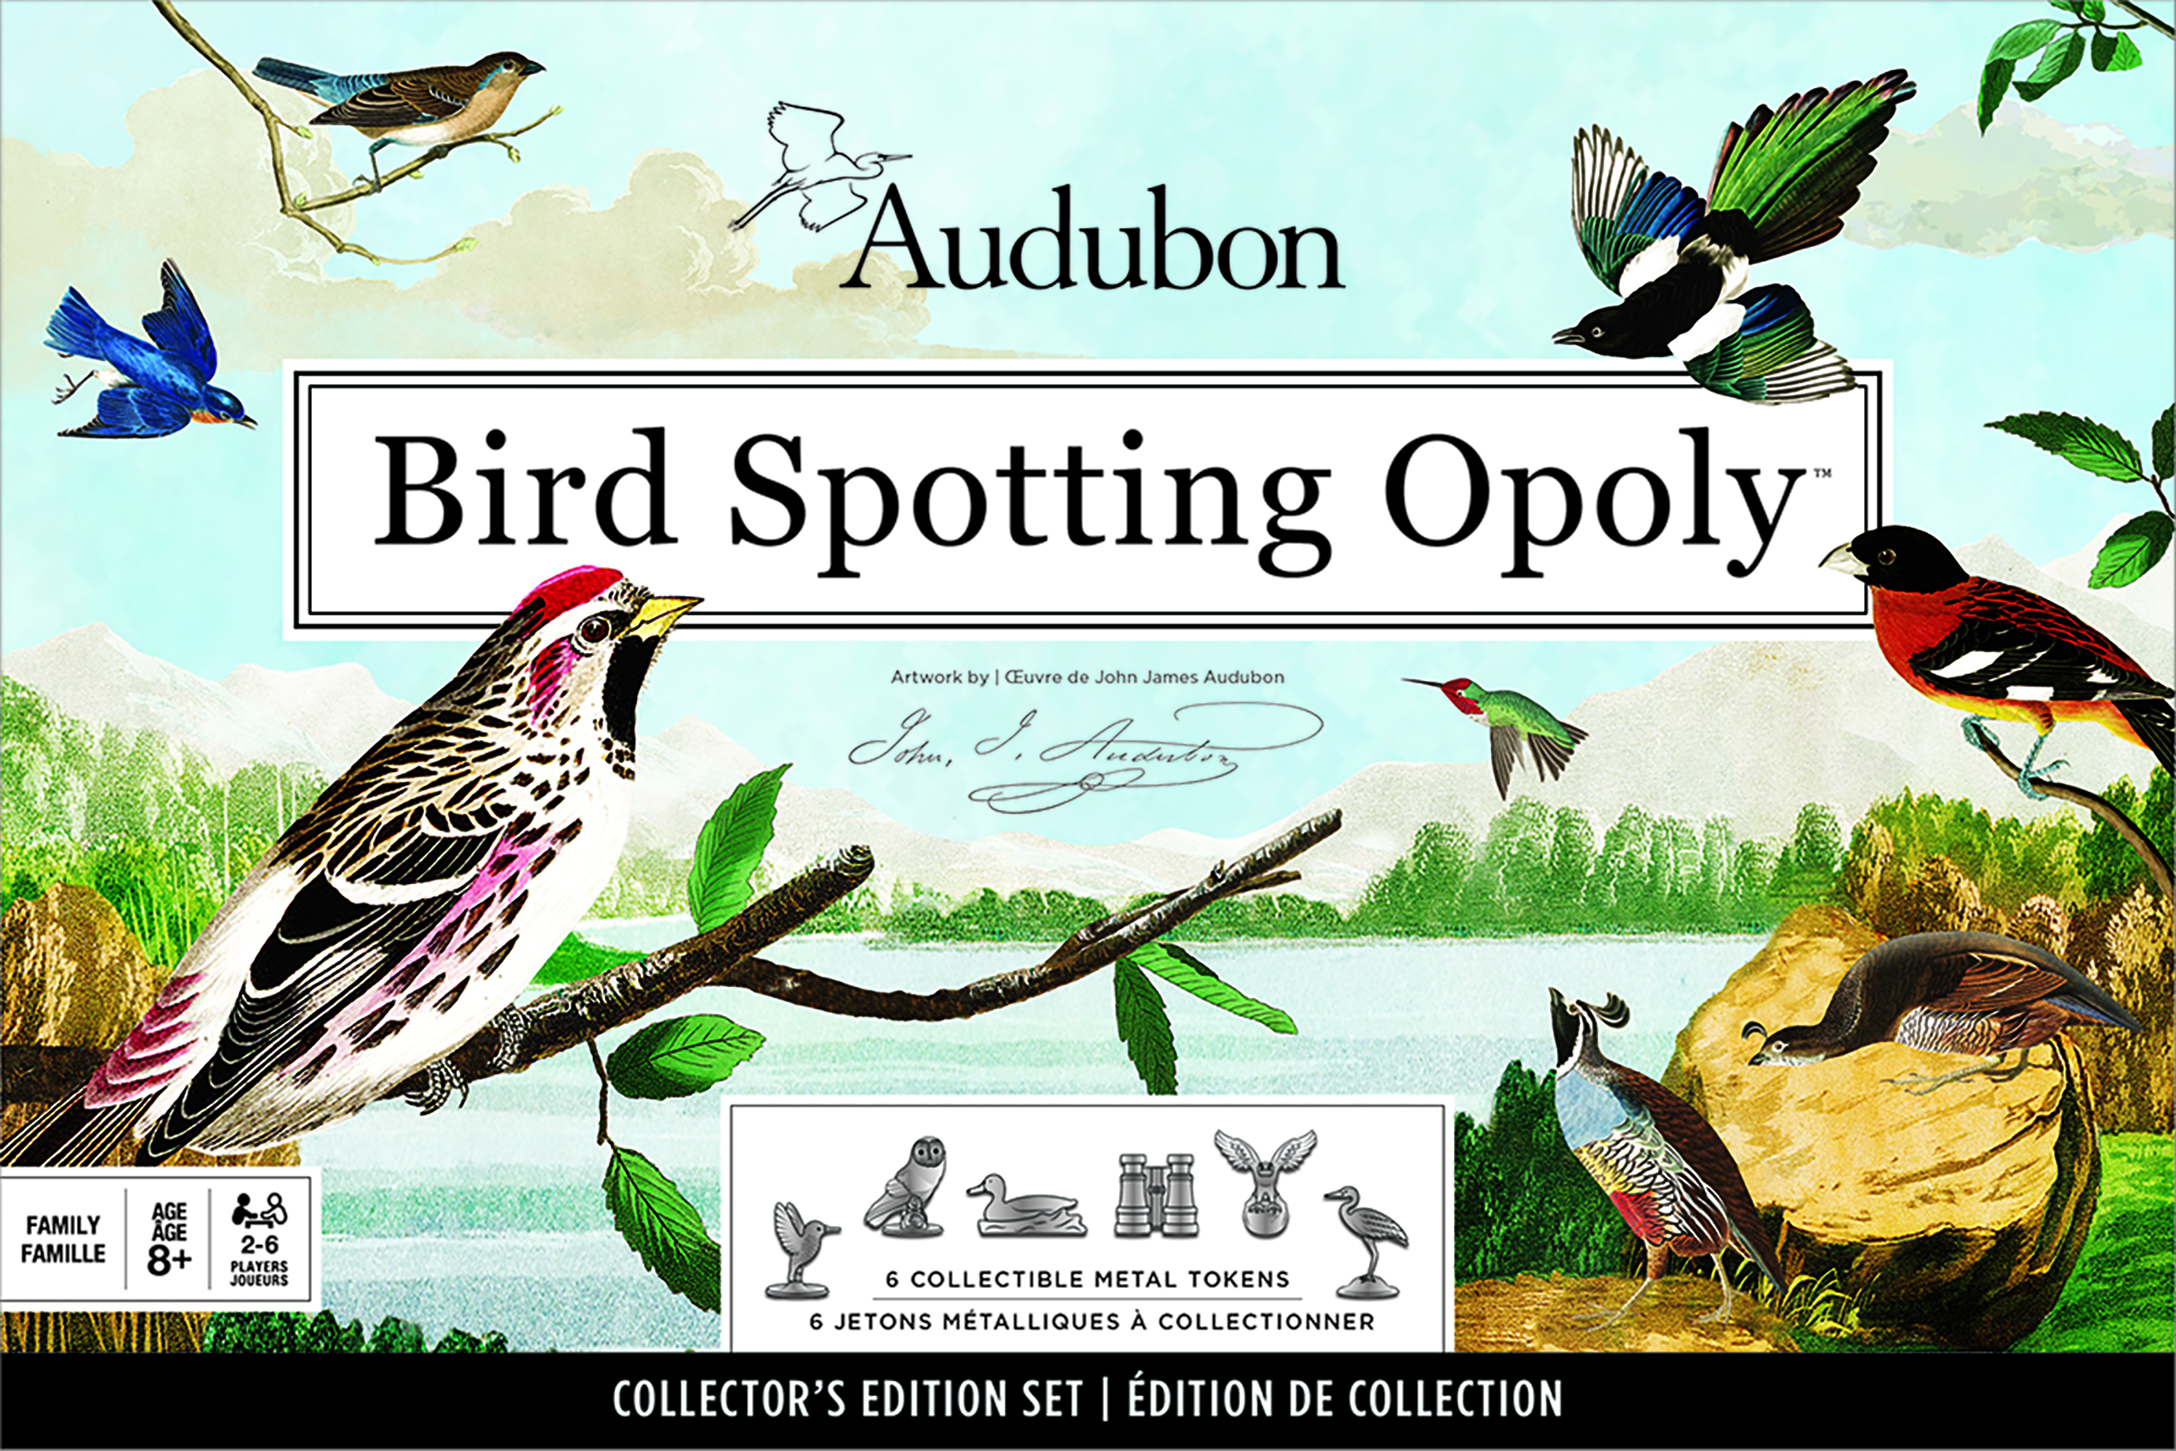 Audubon Bird Spotting Opoly